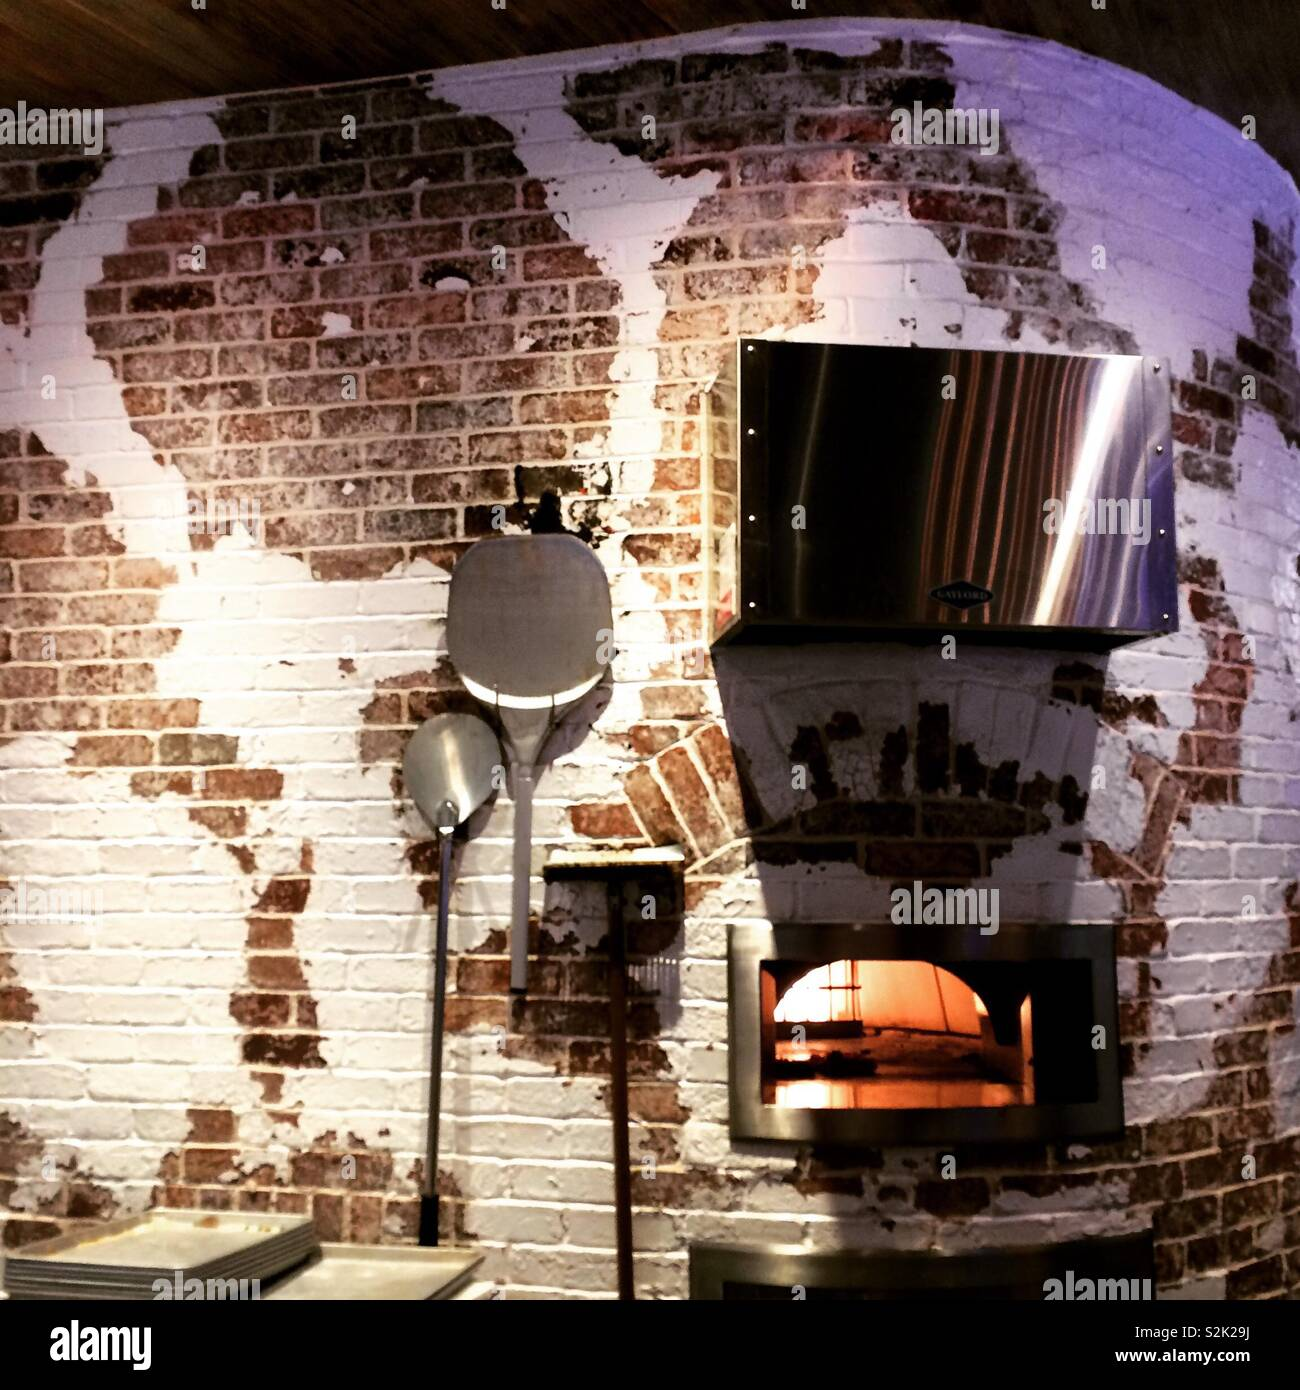 Brick oven, Cal Mare, MGM Springfield, Springfield, Massachusetts, United States - Stock Image